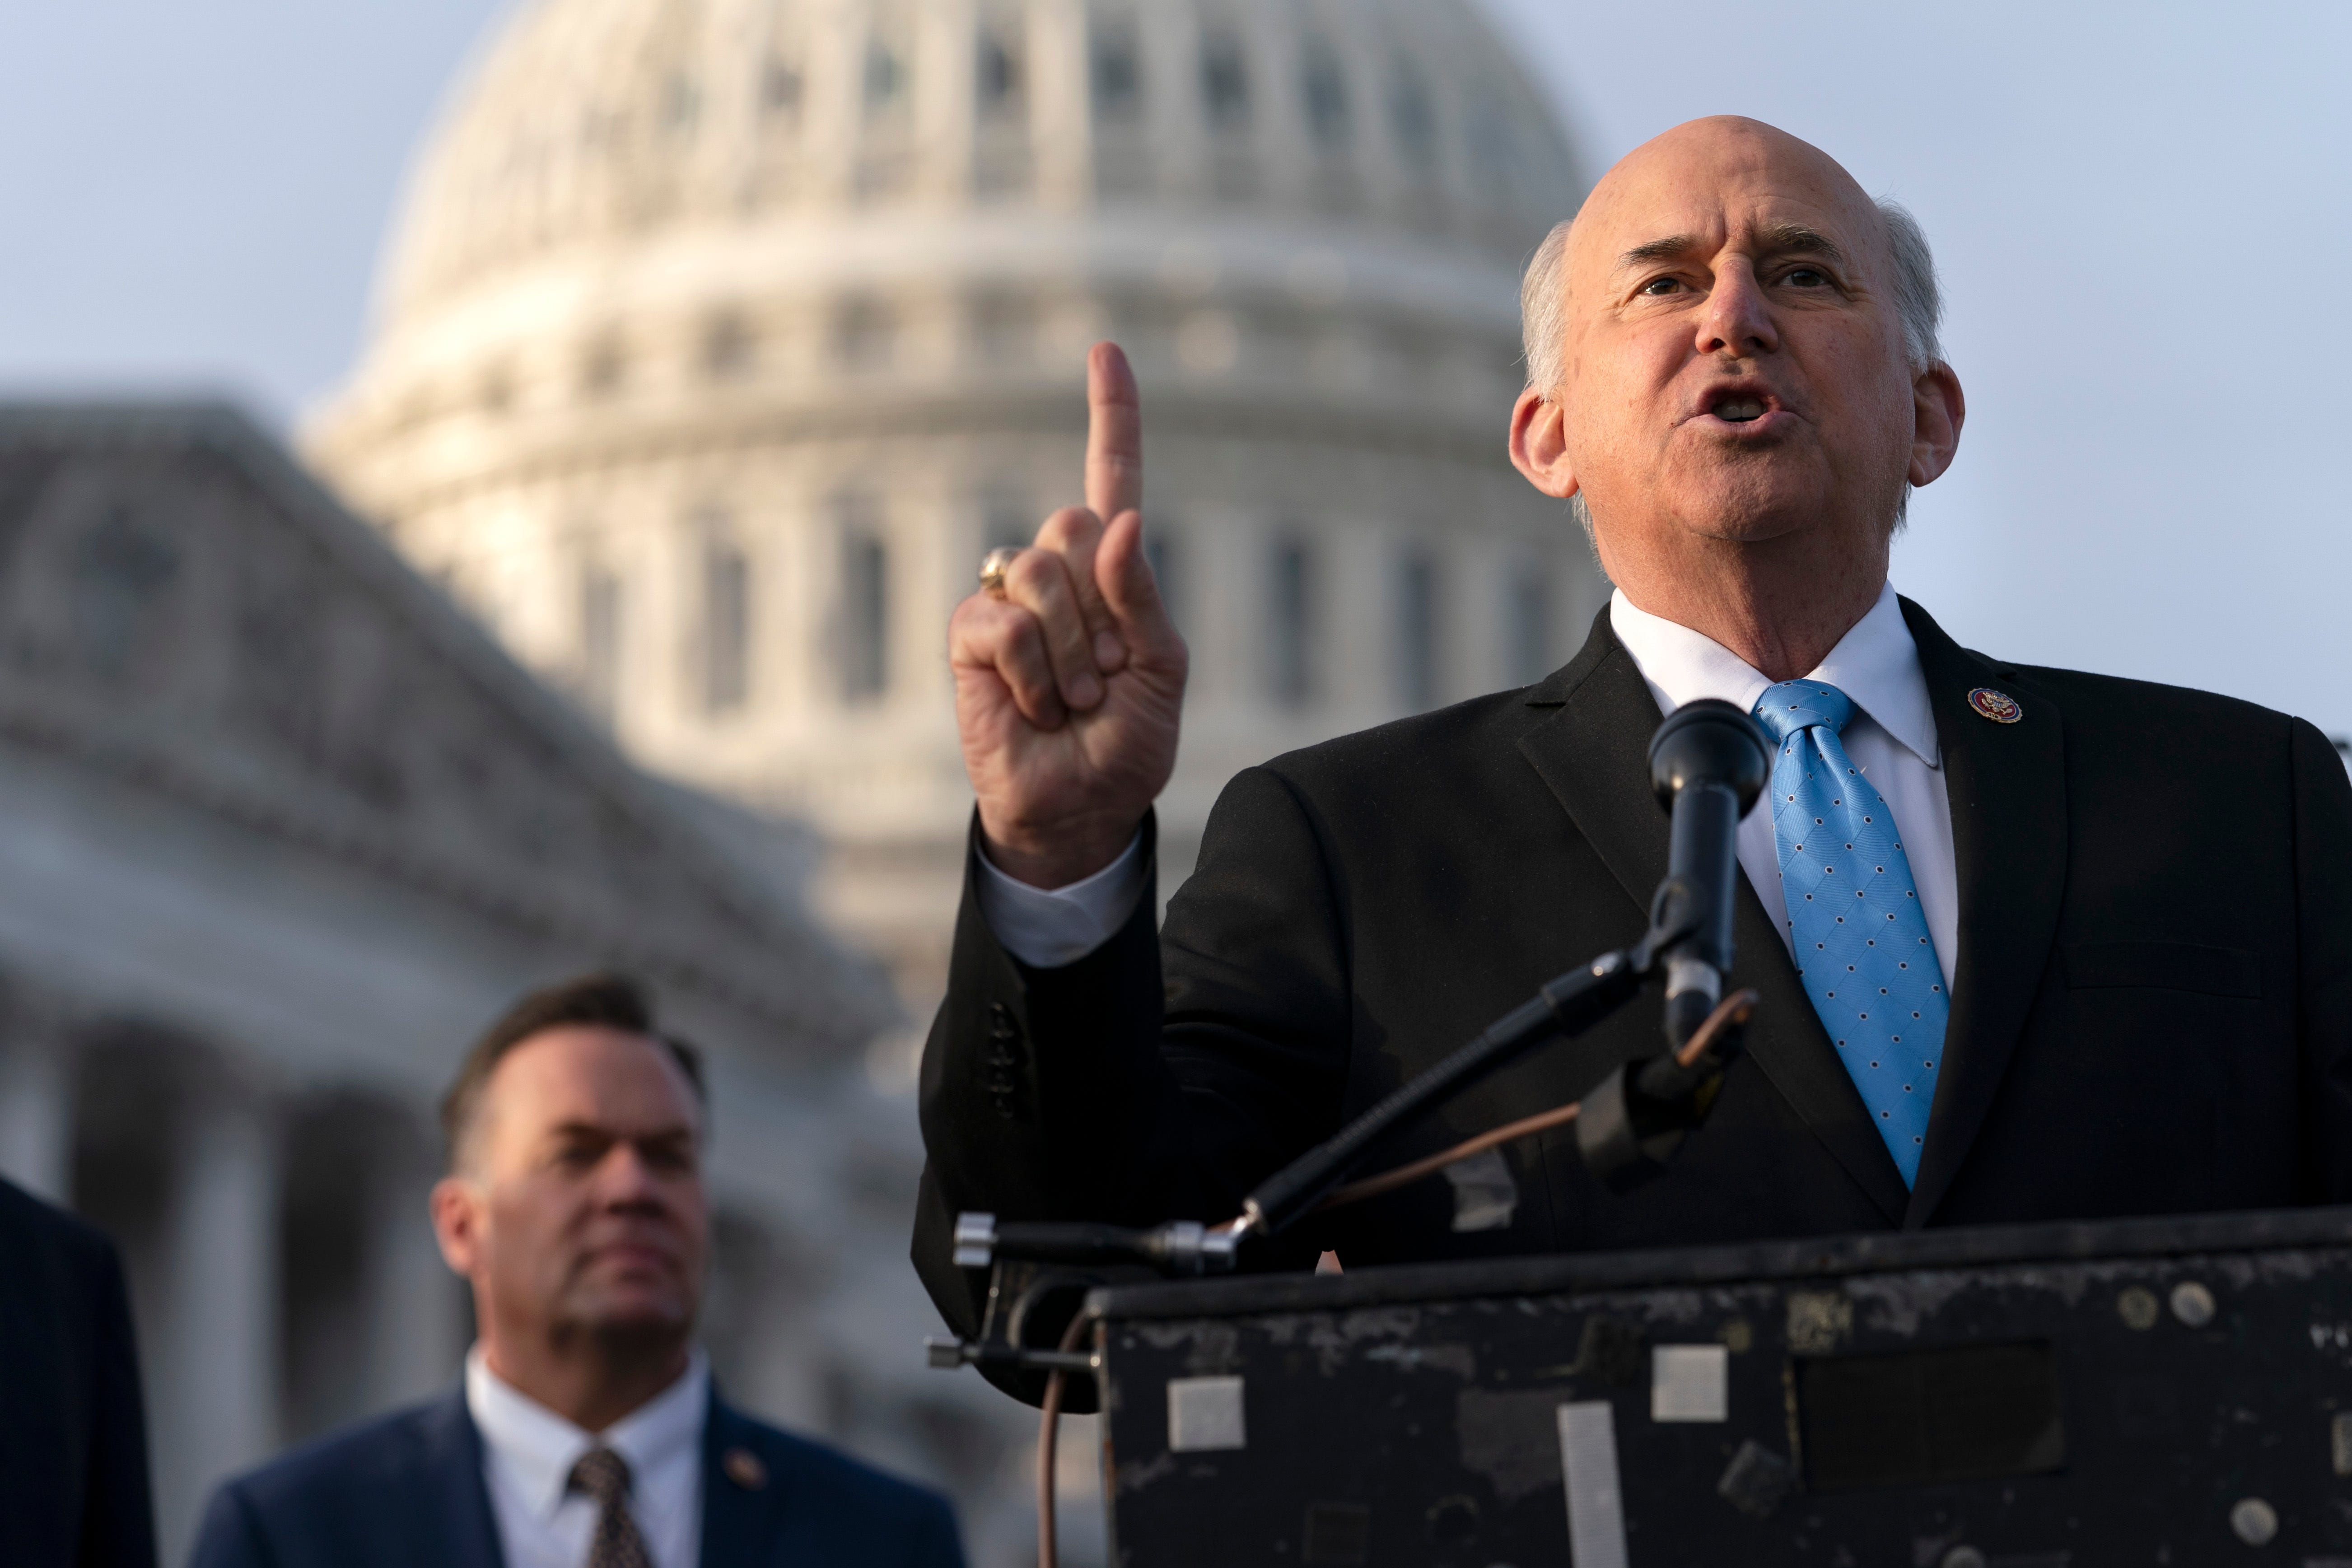 Paging Captain Marvel: Texas Rep. Louie Gohmert asks Forest Service to alter Earth s orbit, or the moon s, to fight climate change